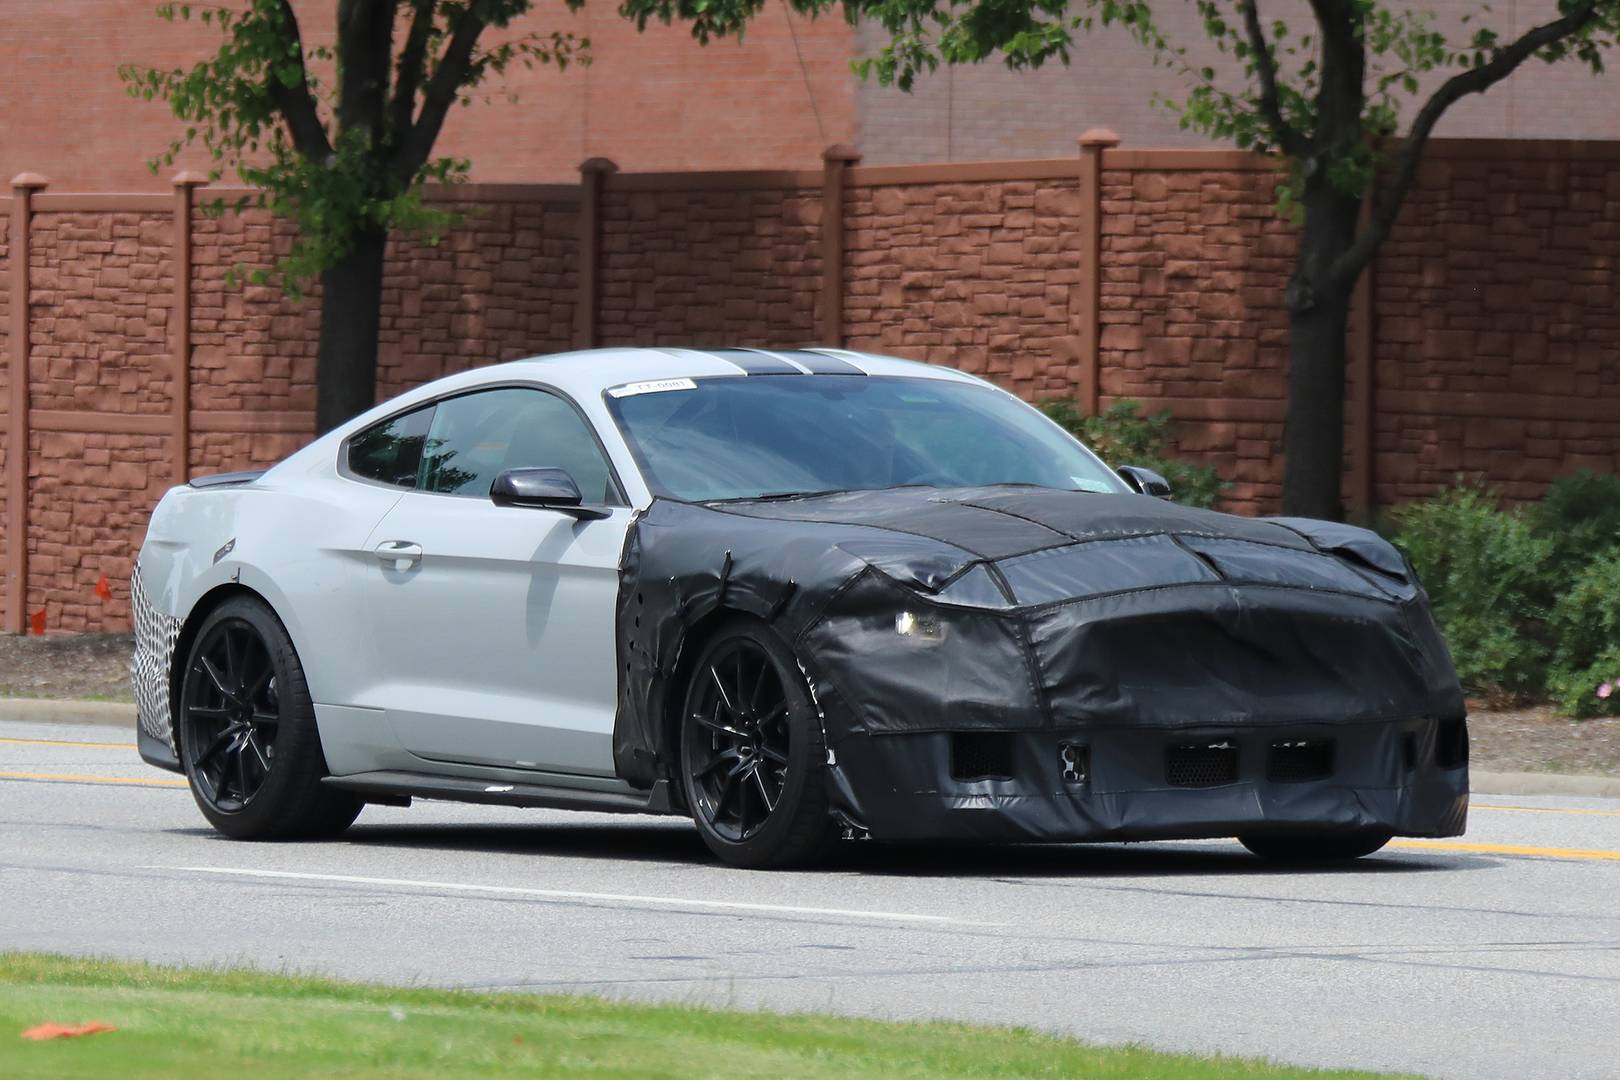 2019 ford mustang shelby gt500 spy shots emerge gtspirit. Black Bedroom Furniture Sets. Home Design Ideas